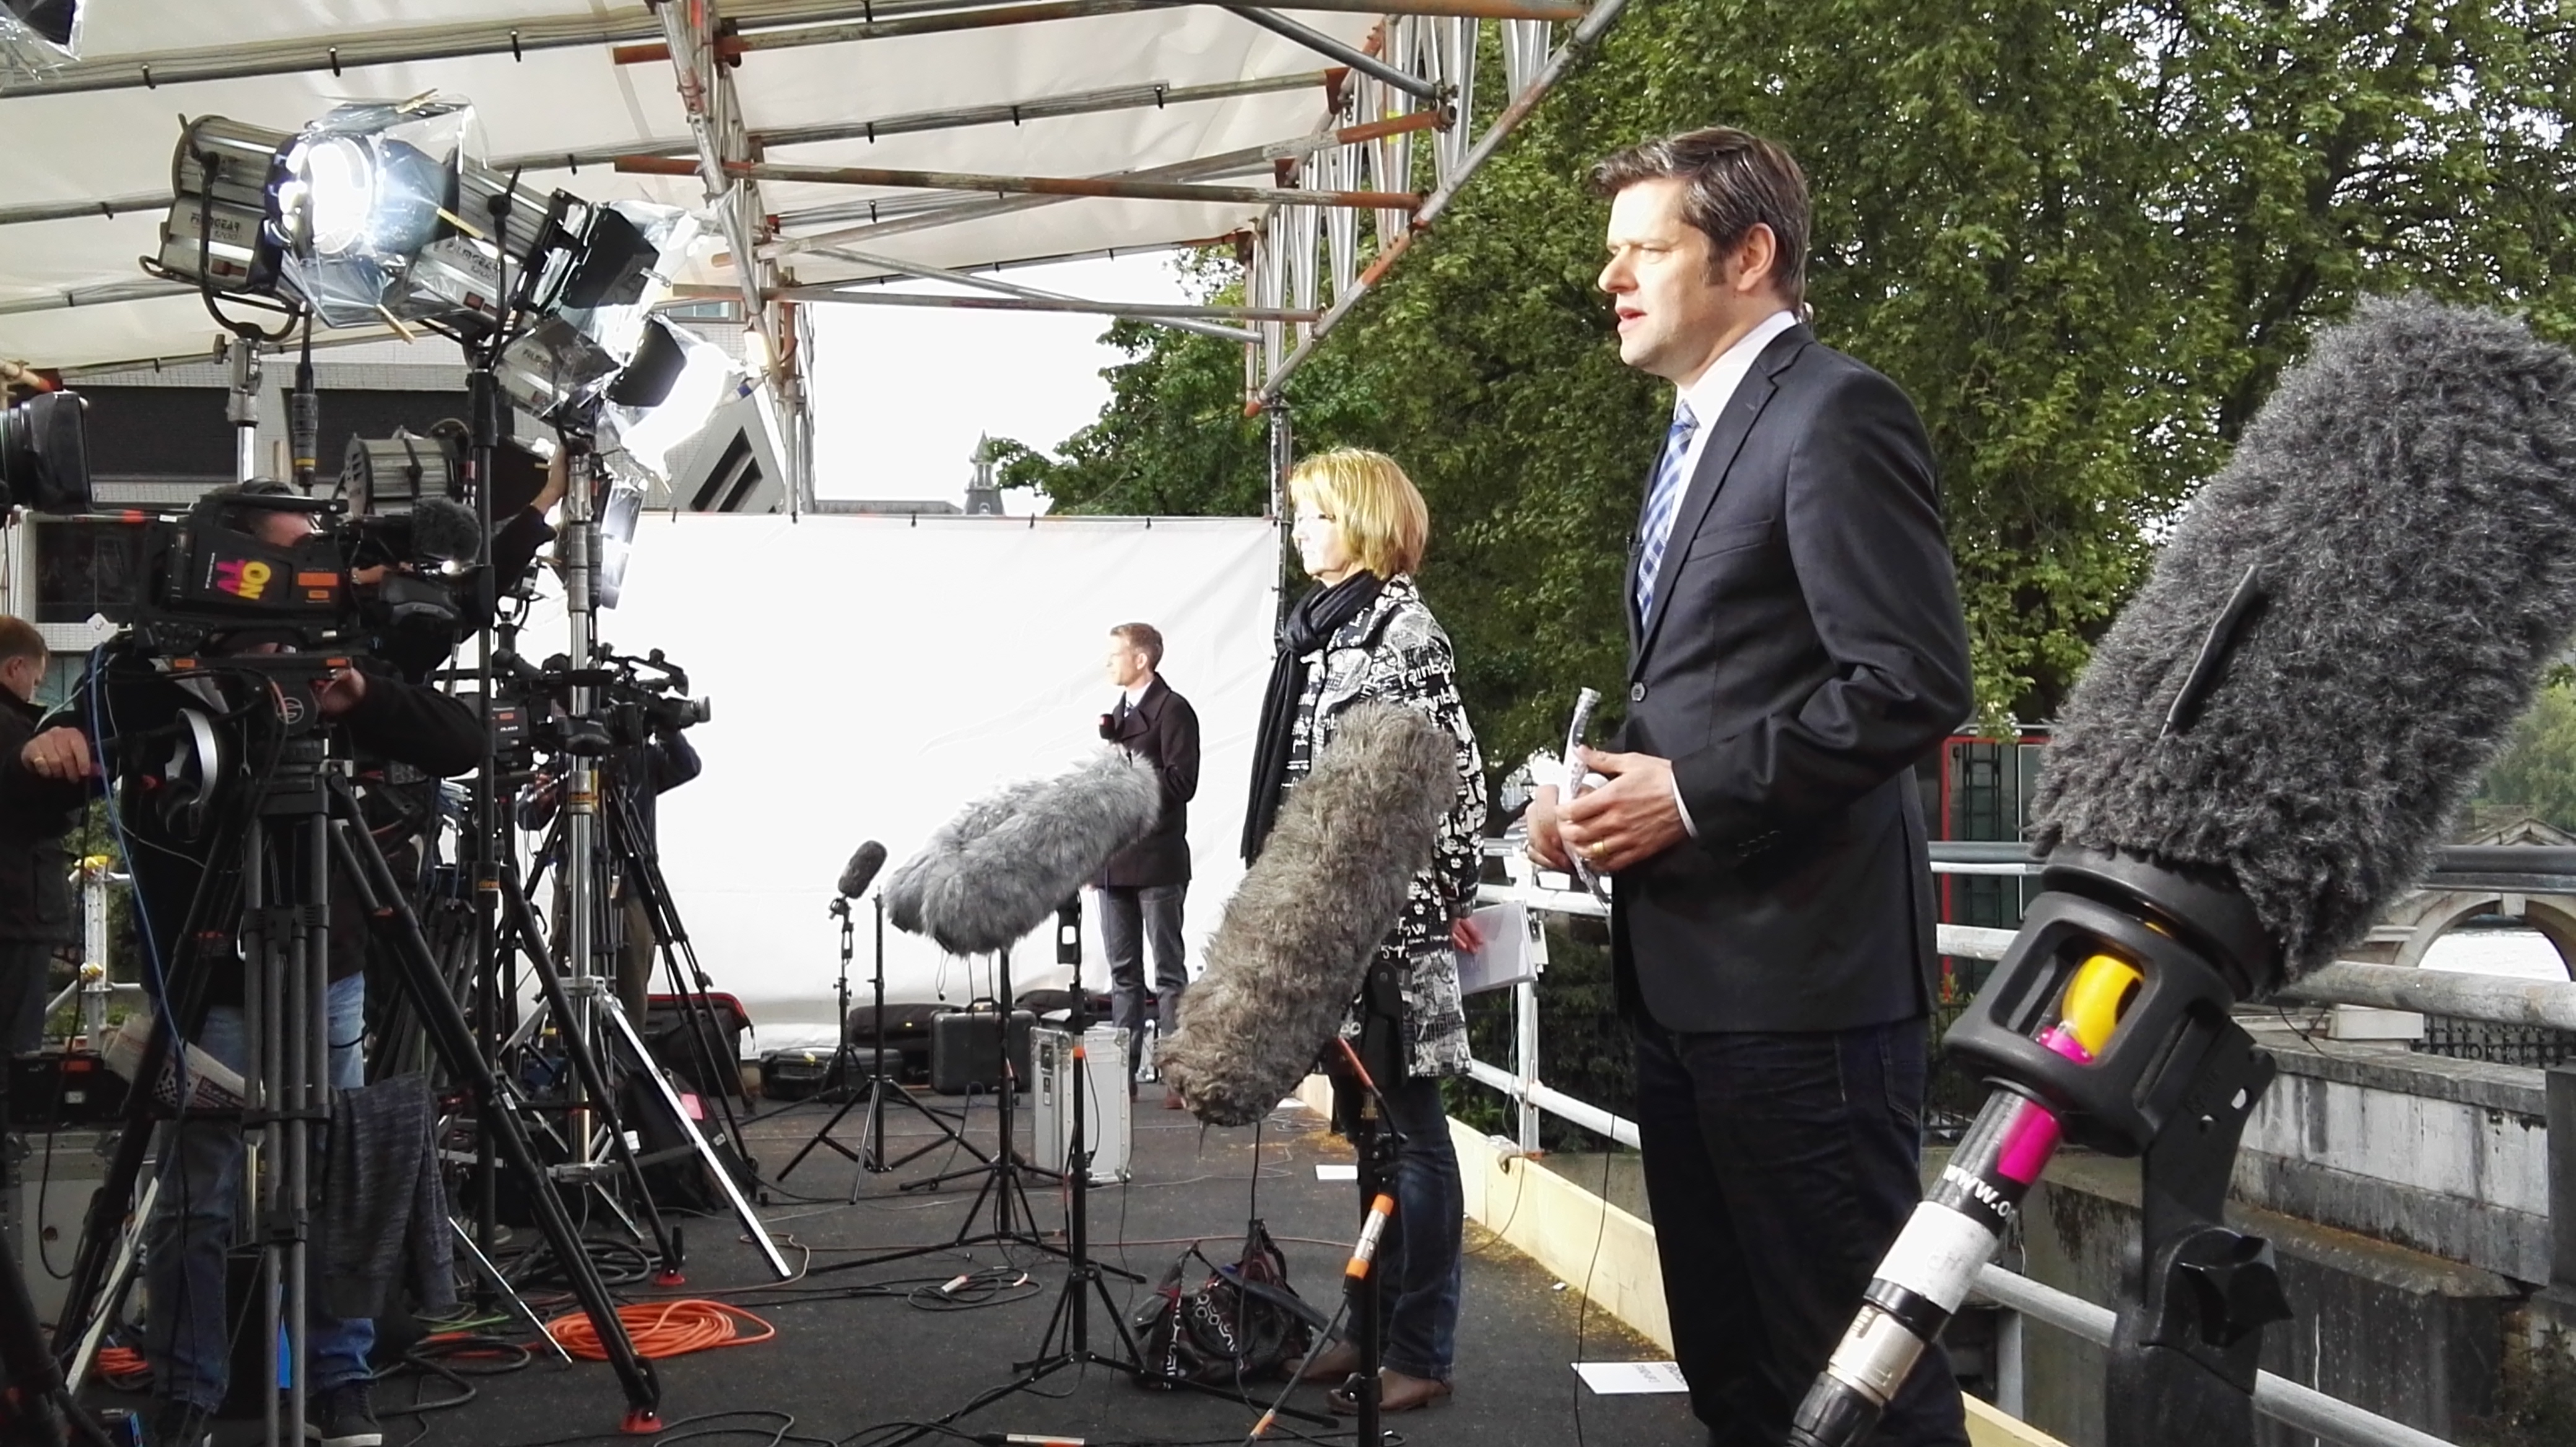 Camera crews filming the general election